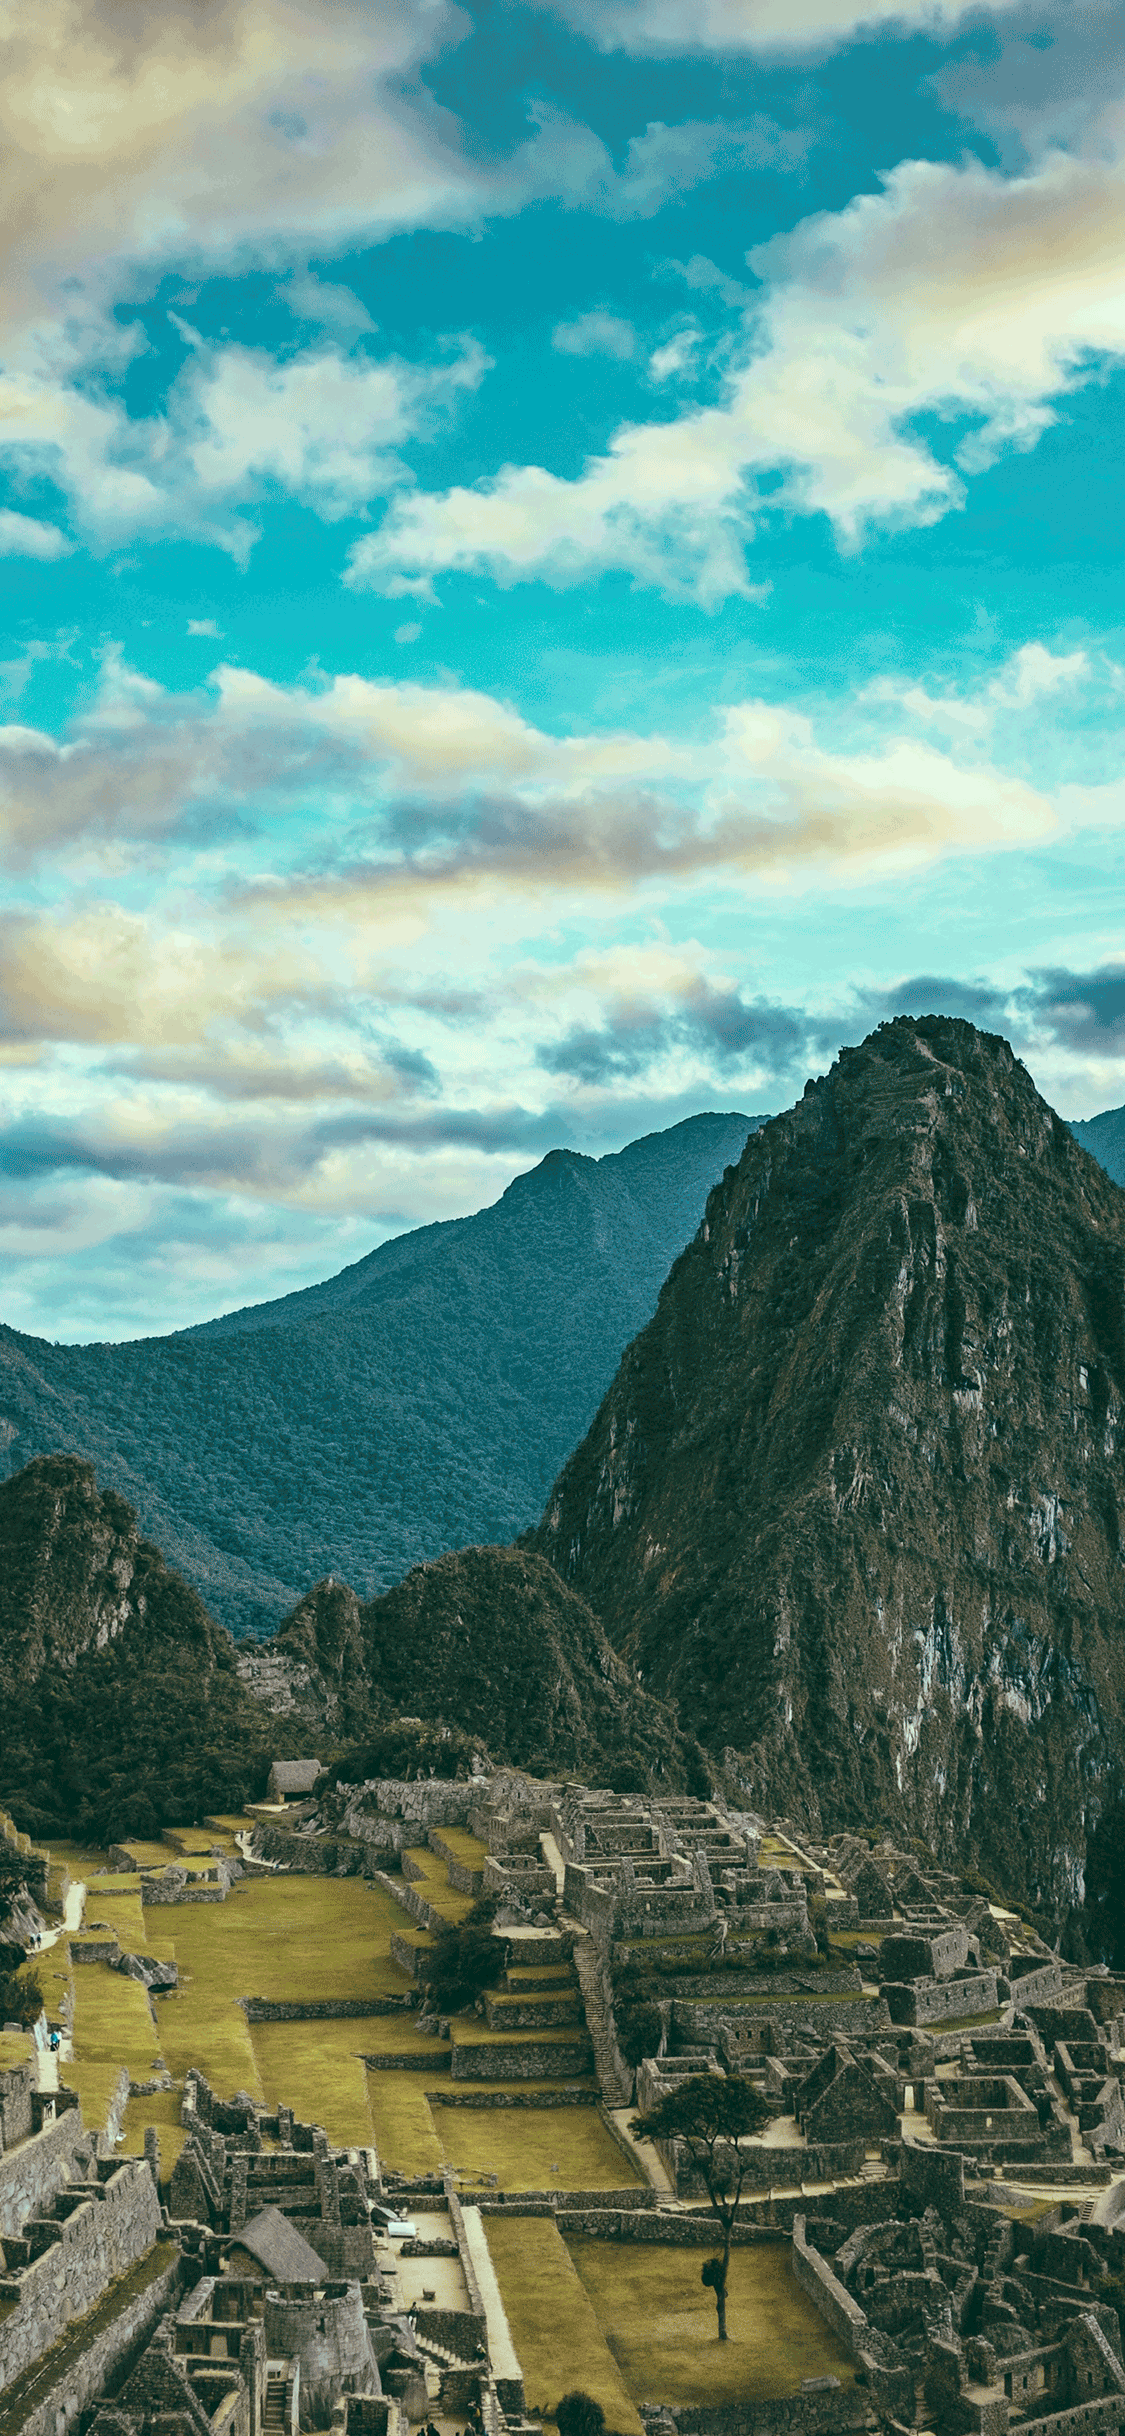 iPhone wallpaper machu picchu clouds Fonds d'écran iPhone du 18/10/2018